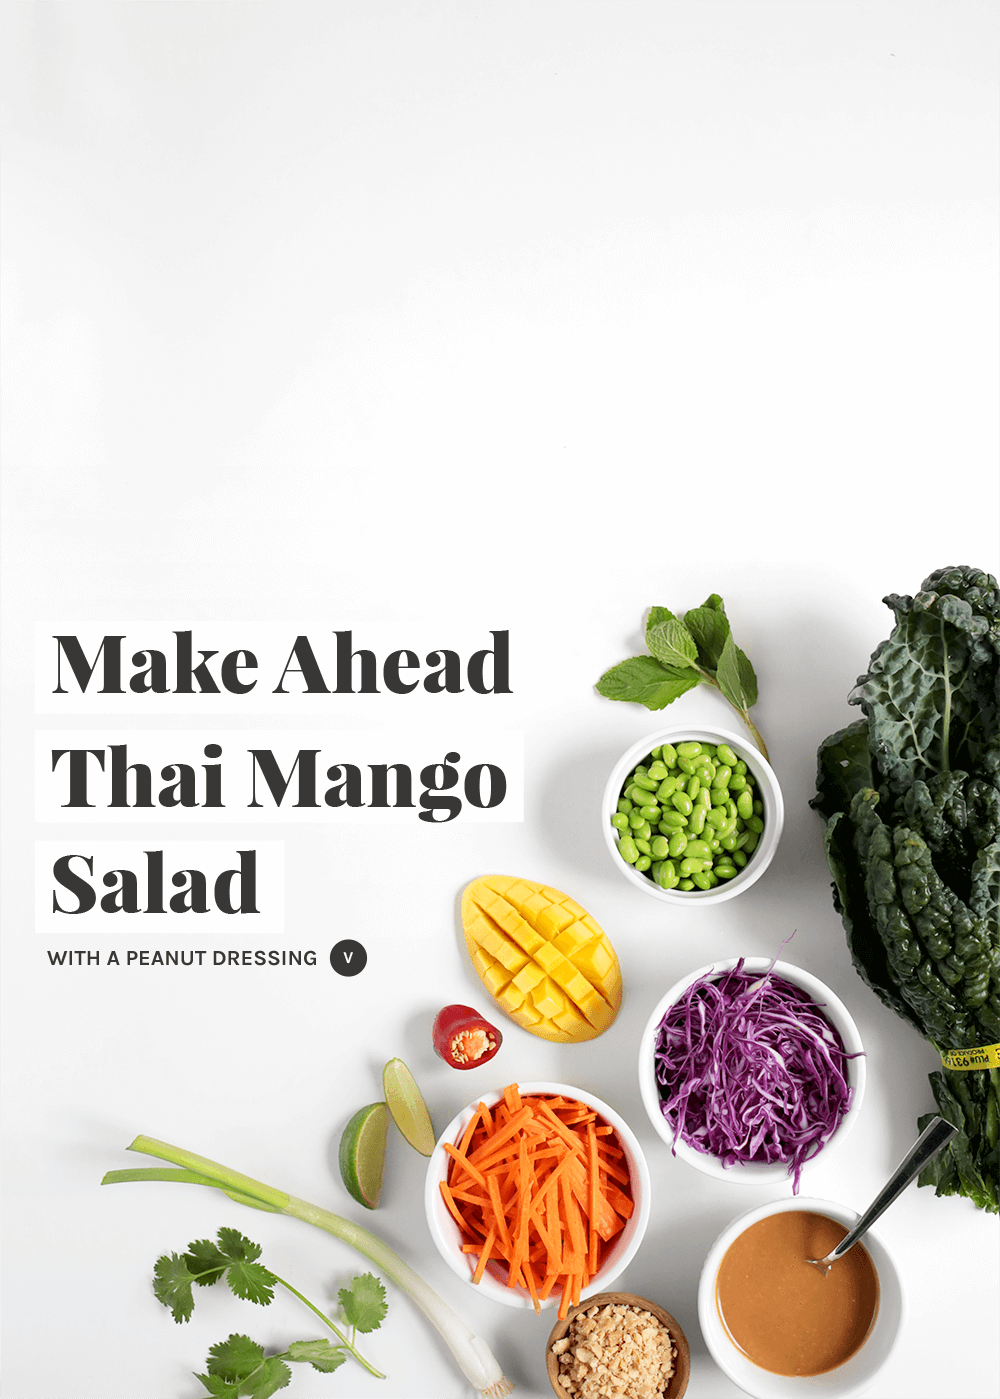 Make Ahead Thai Mango Salad with a peanut dressing from The Faux Martha